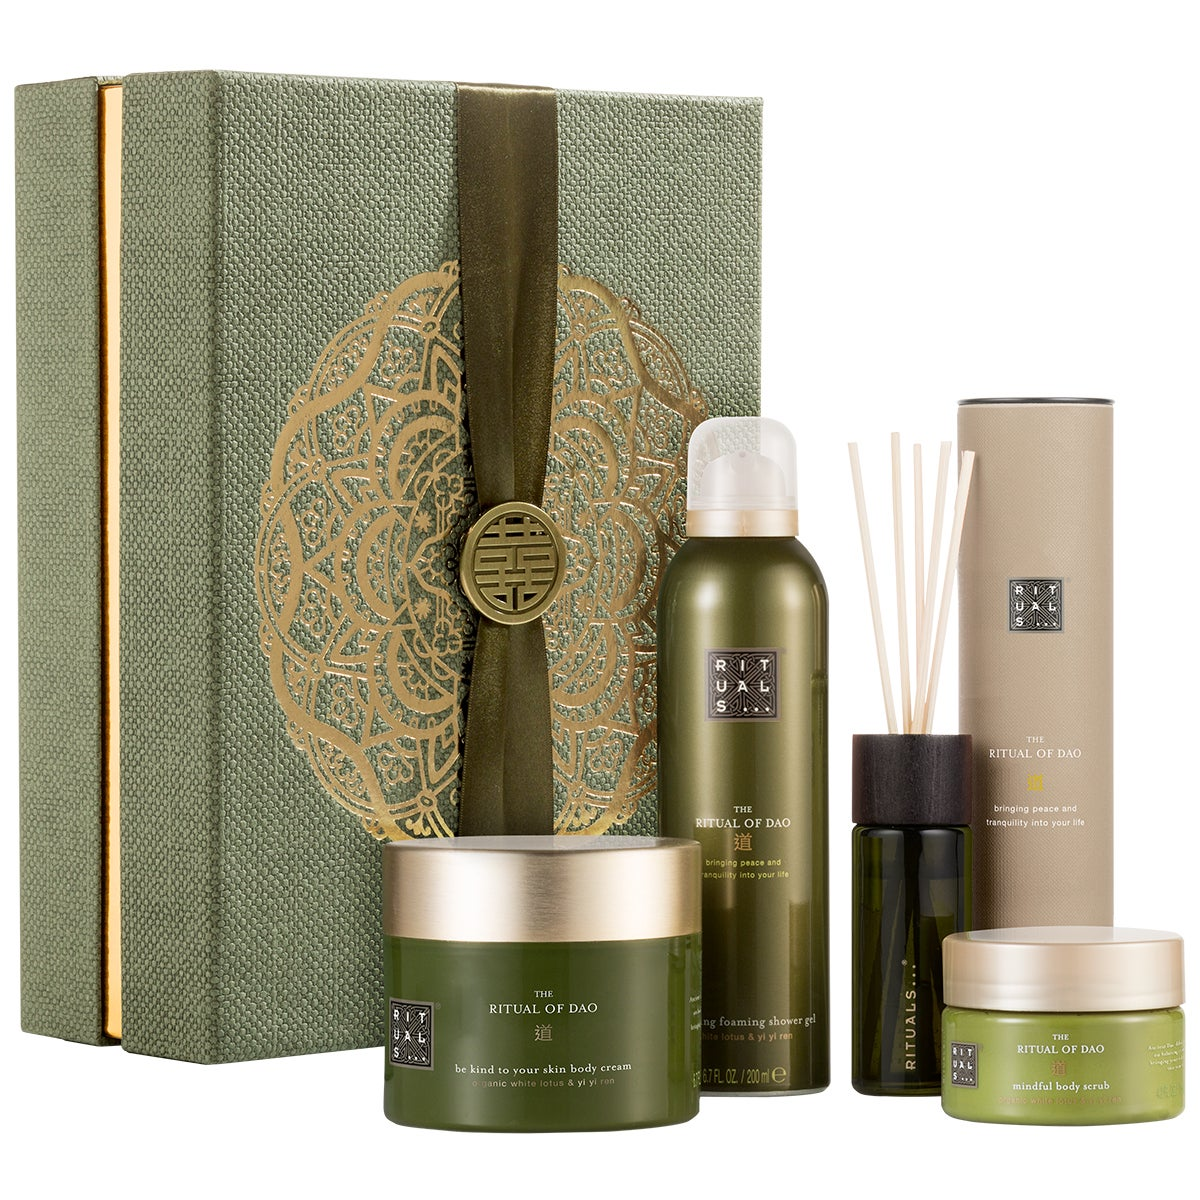 Rituals... Rituals The Ritual of Dao - Calming Collection 2018